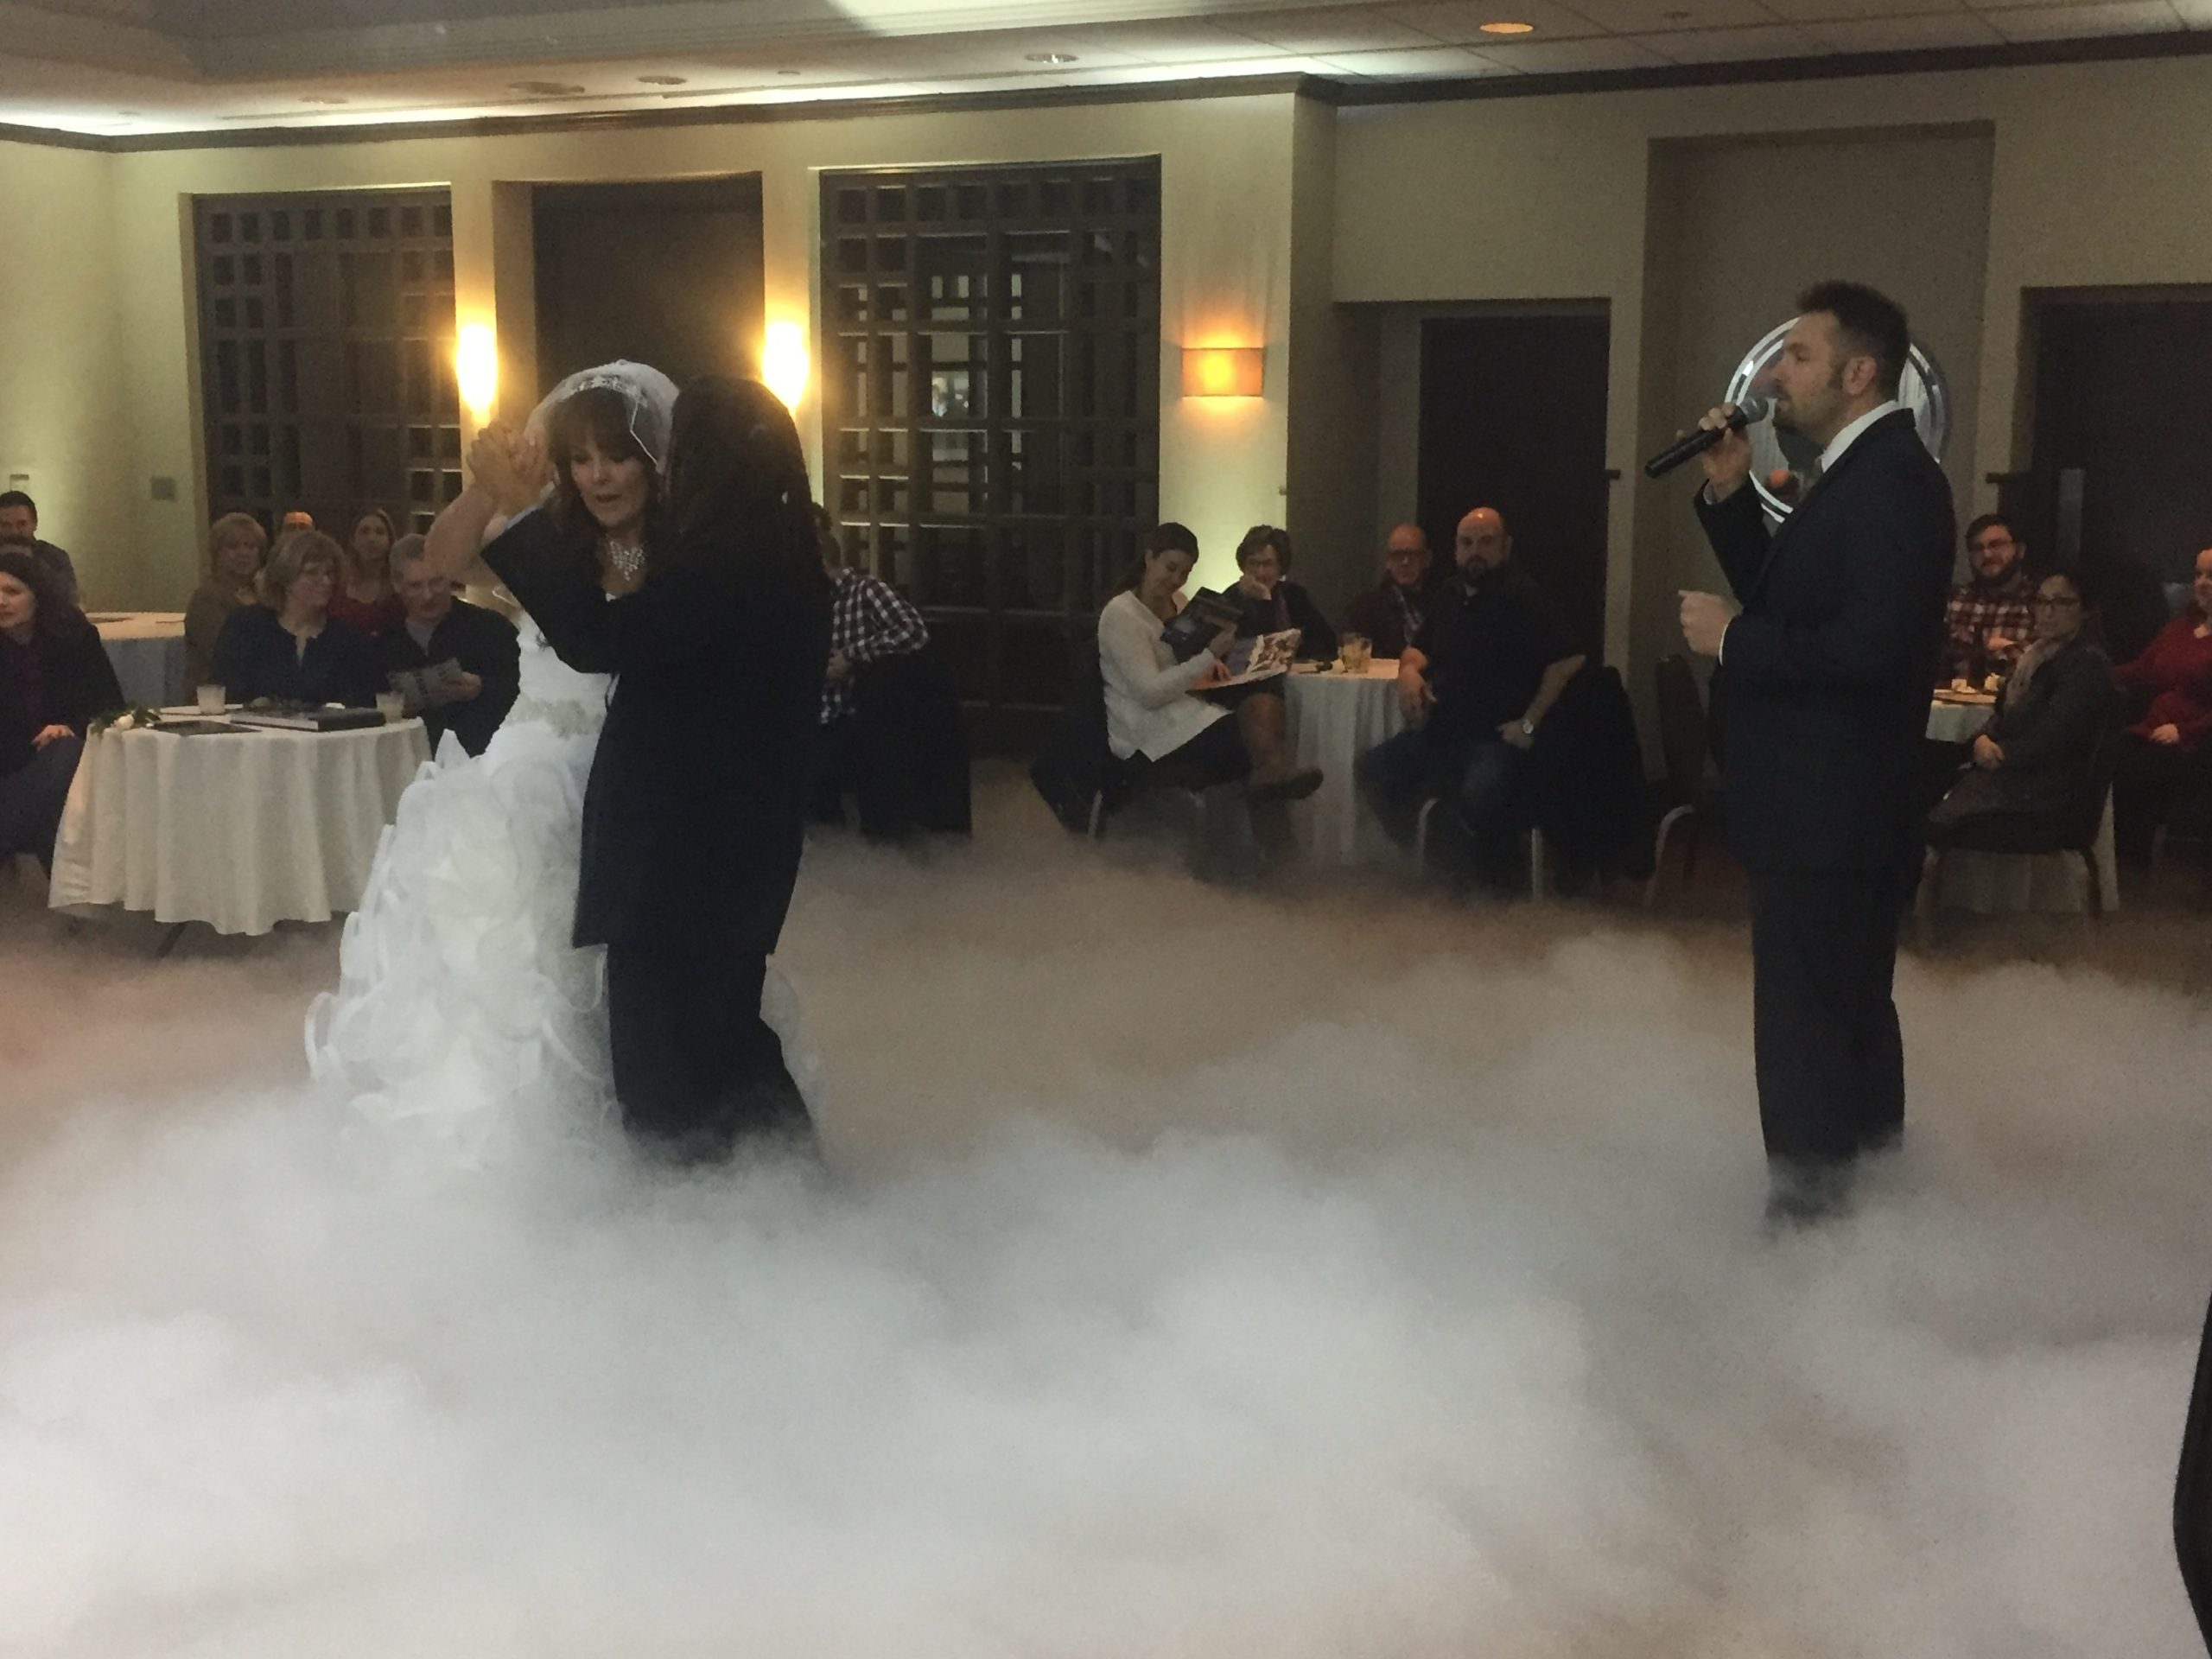 Jay Thomson singing the first dance while our bride and groom dance on the clouds